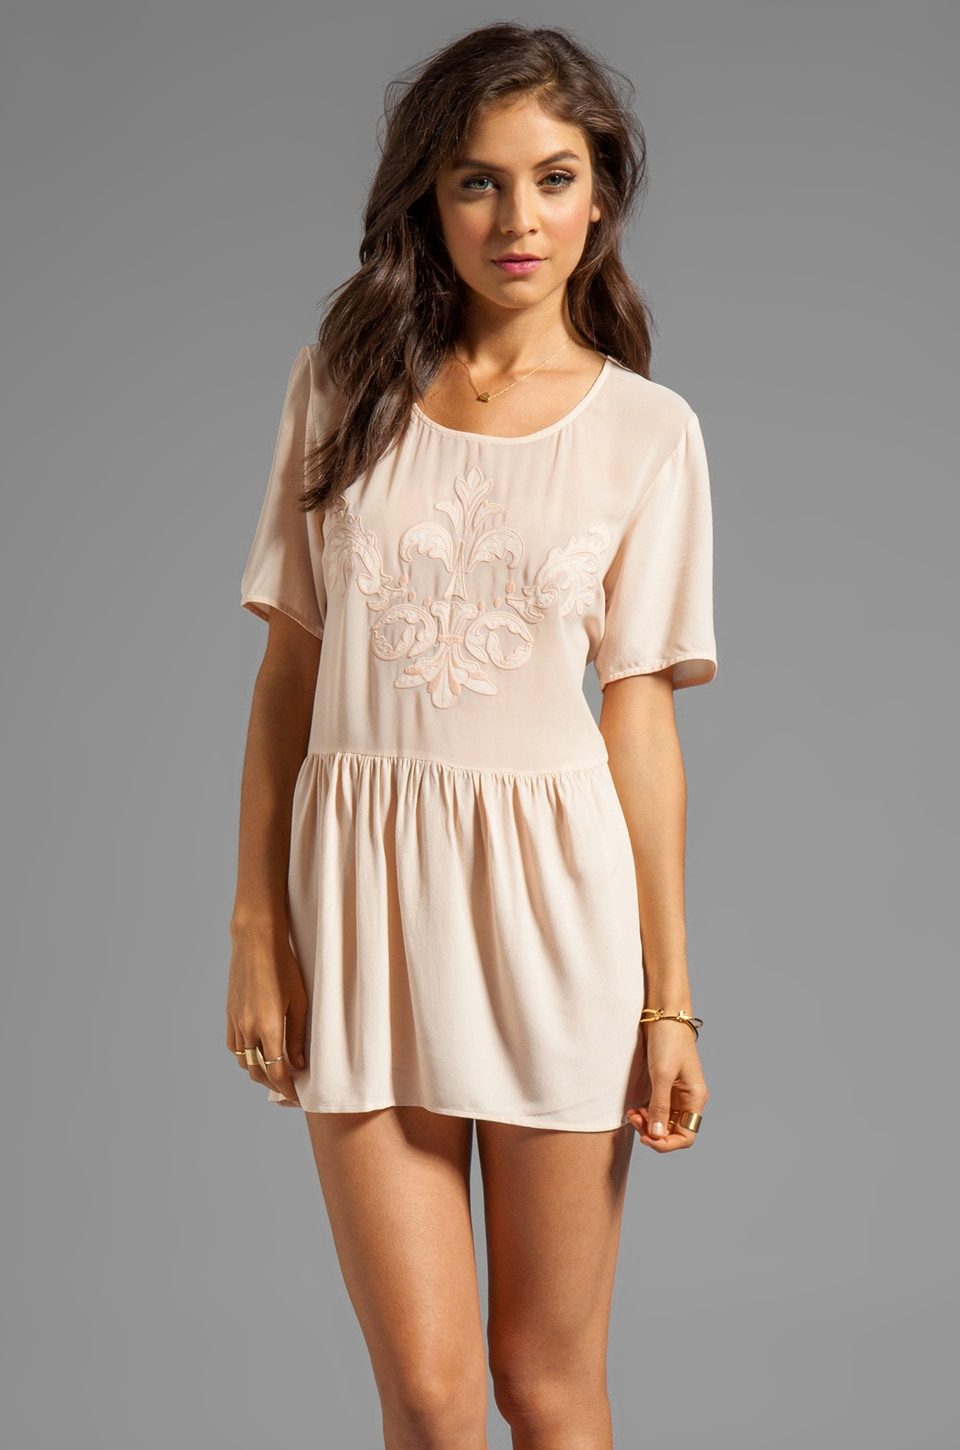 Wish Jeopardy Tunic in Nude